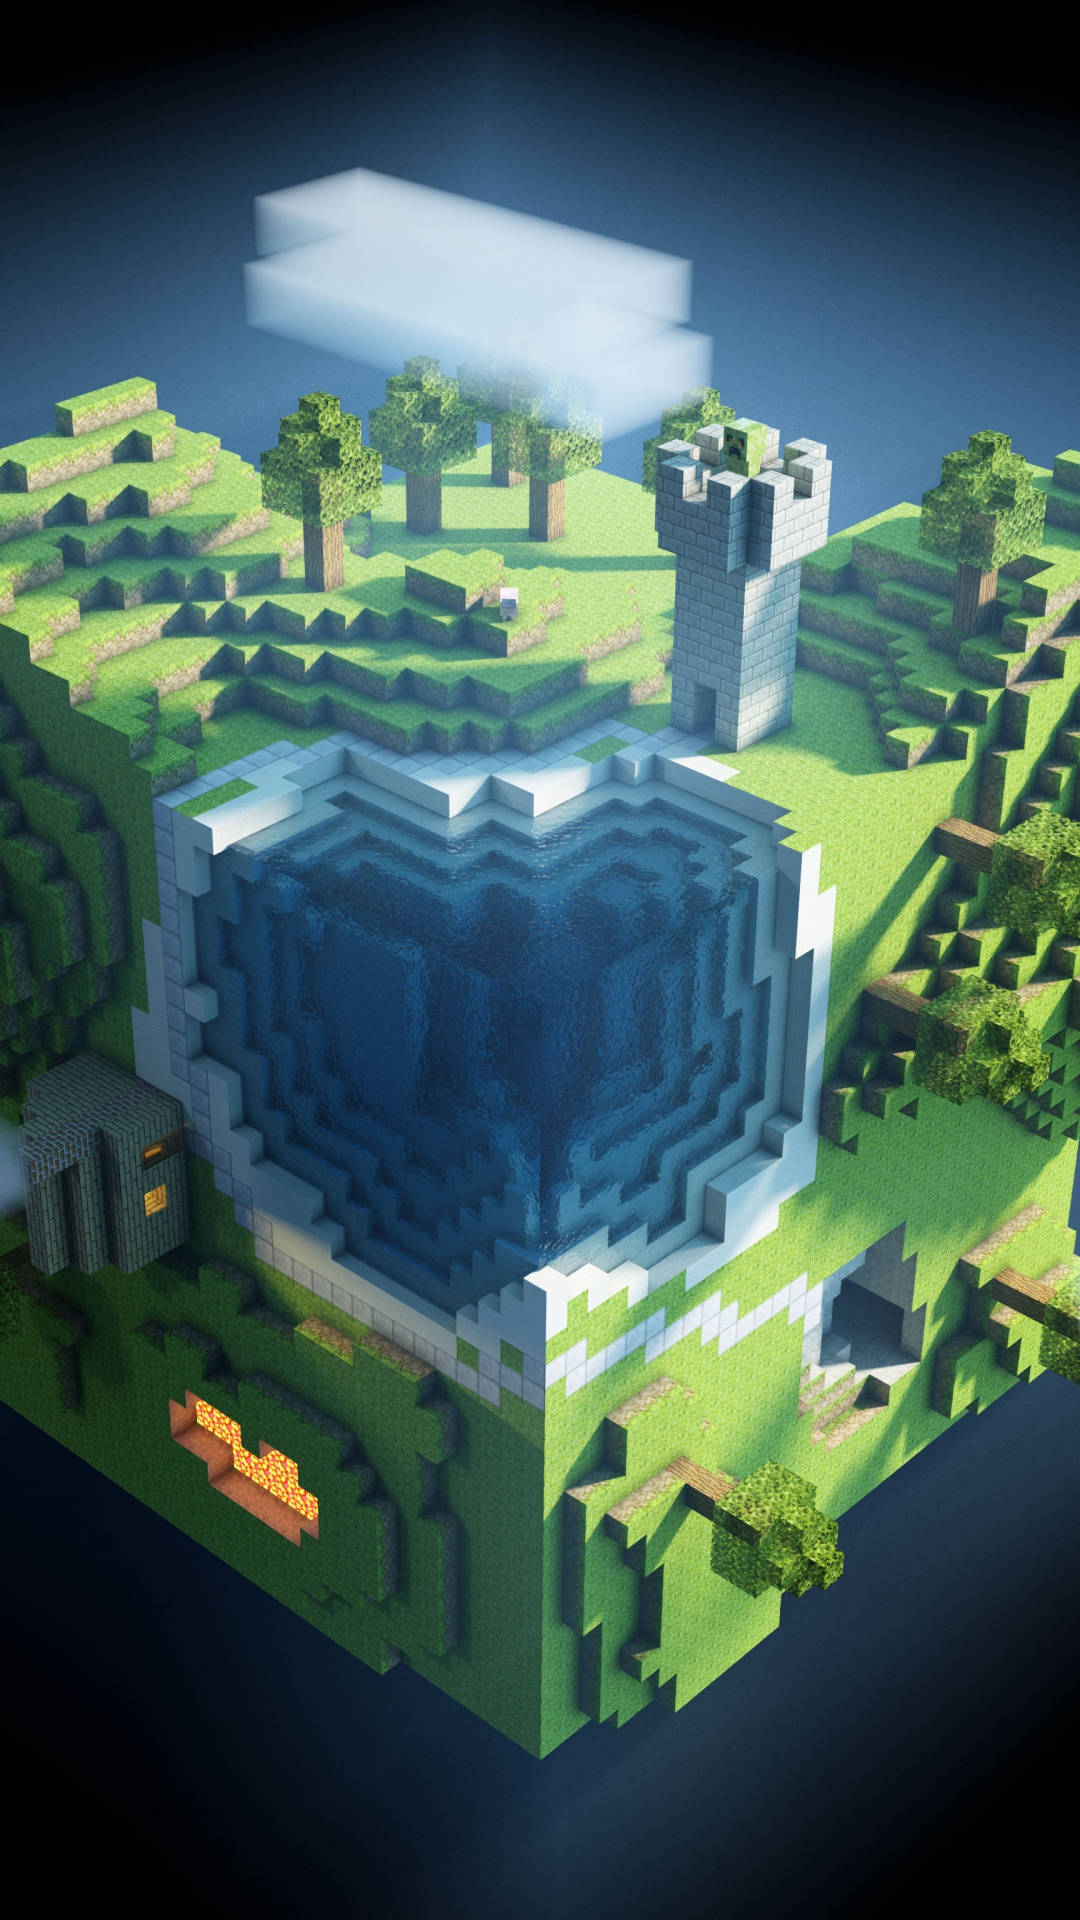 Download Minecraft Wallpaper Mobile Gallery